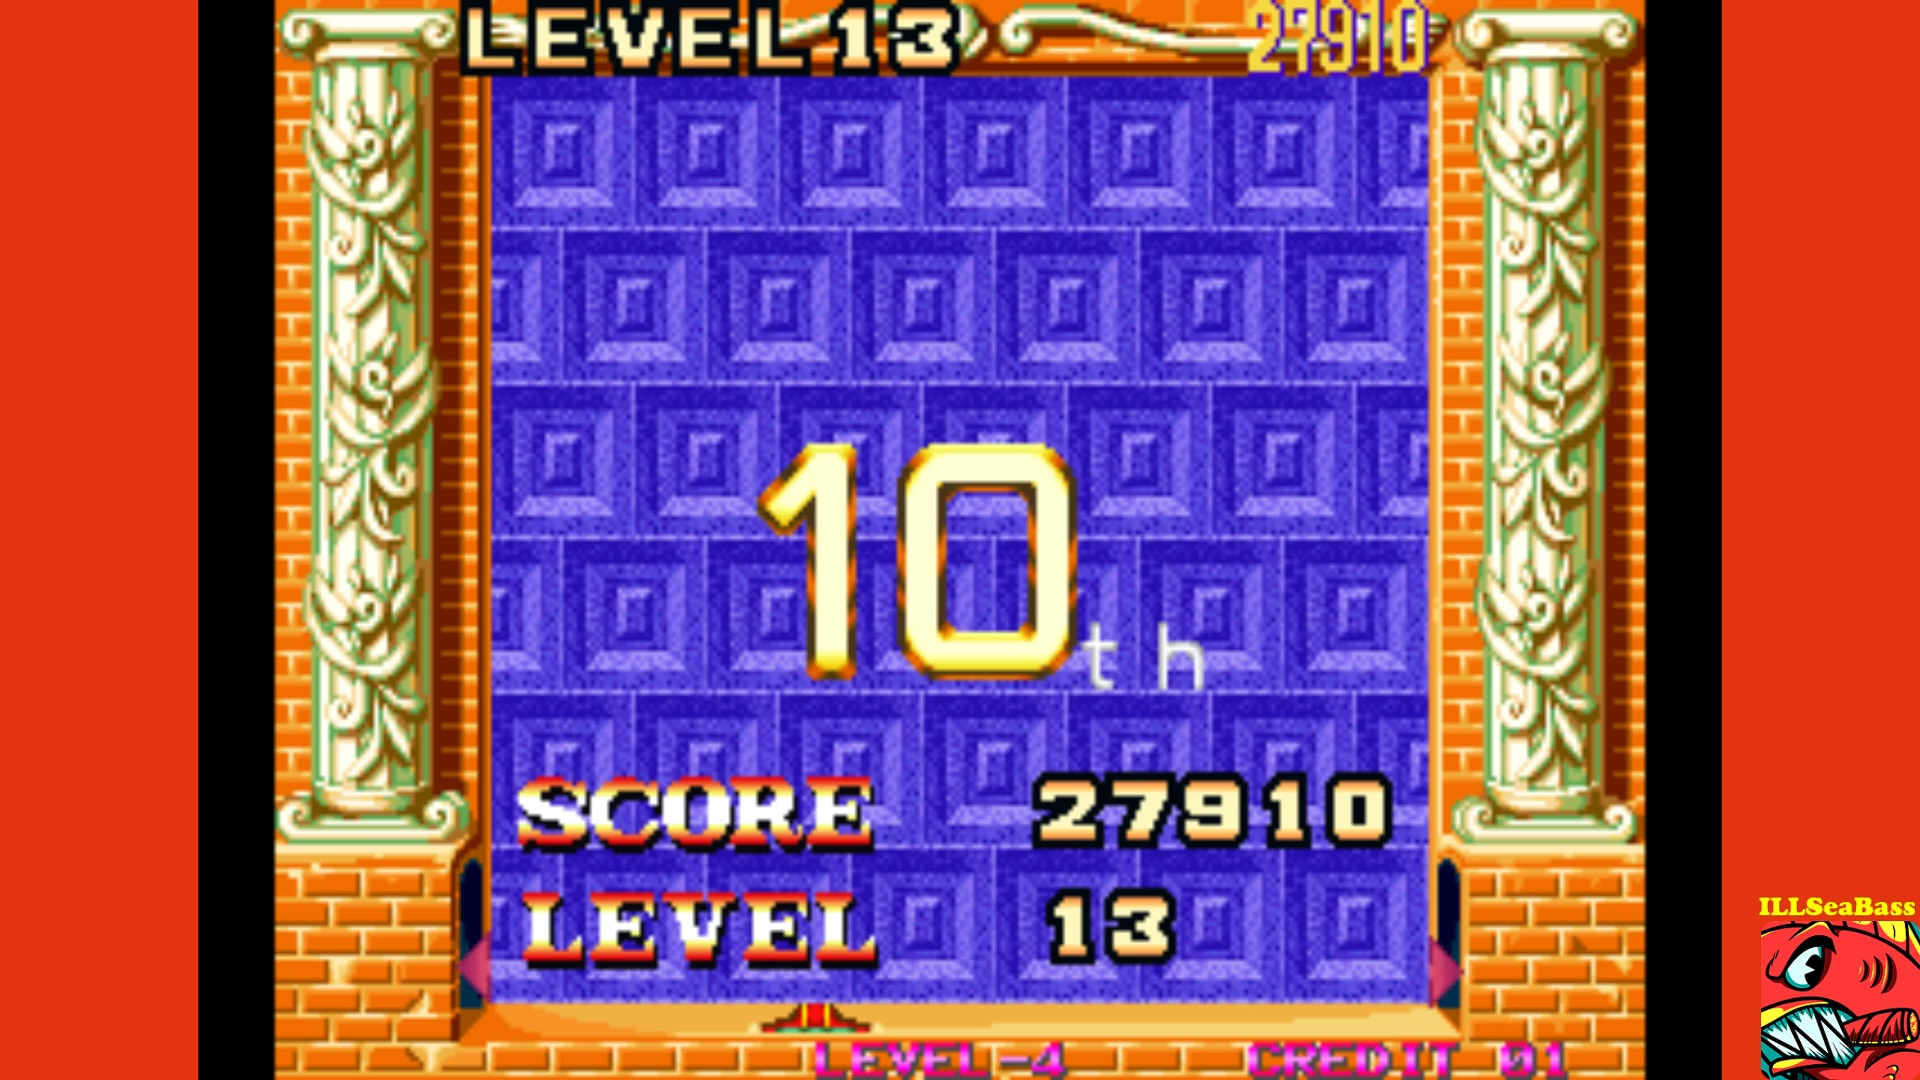 ILLSeaBass: Magical Drop 2 (Neo Geo Emulated) 27,910 points on 2017-09-26 15:15:52